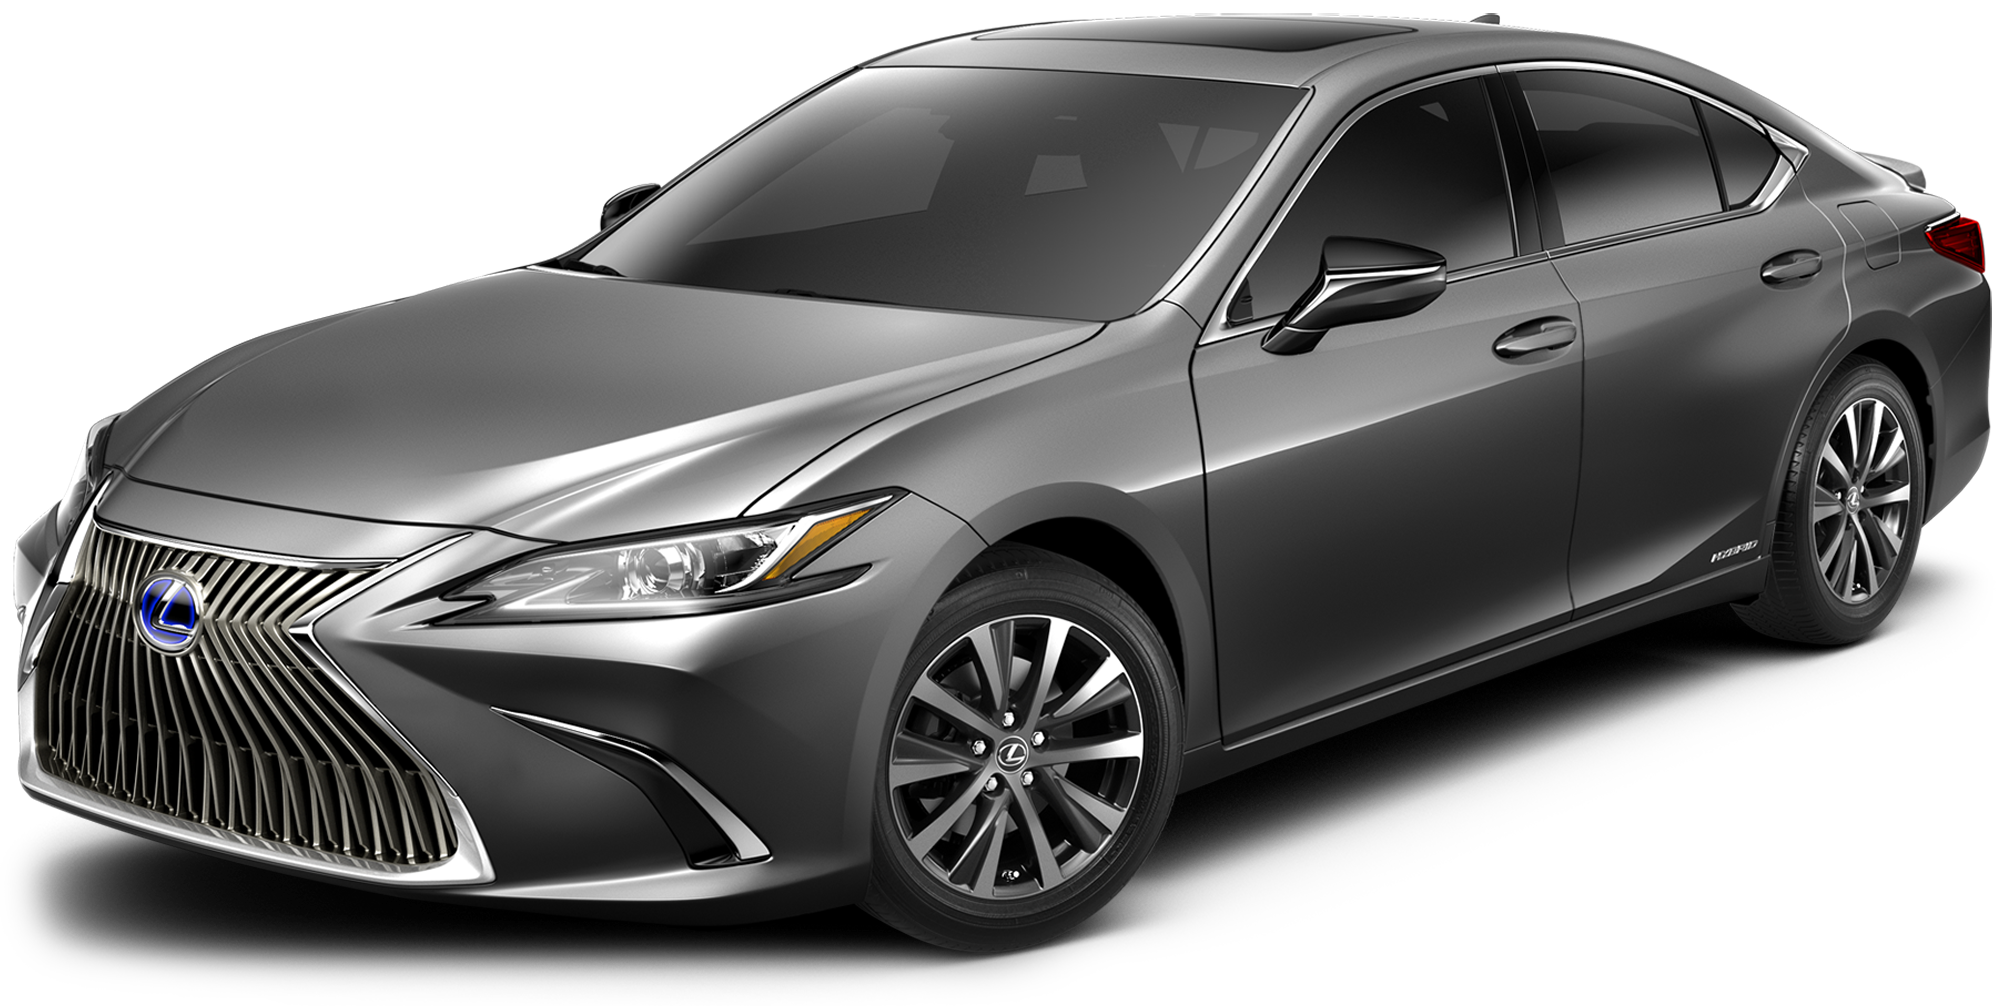 2020 Lexus ES 300h Incentives, Specials & Offers in Roswell GA